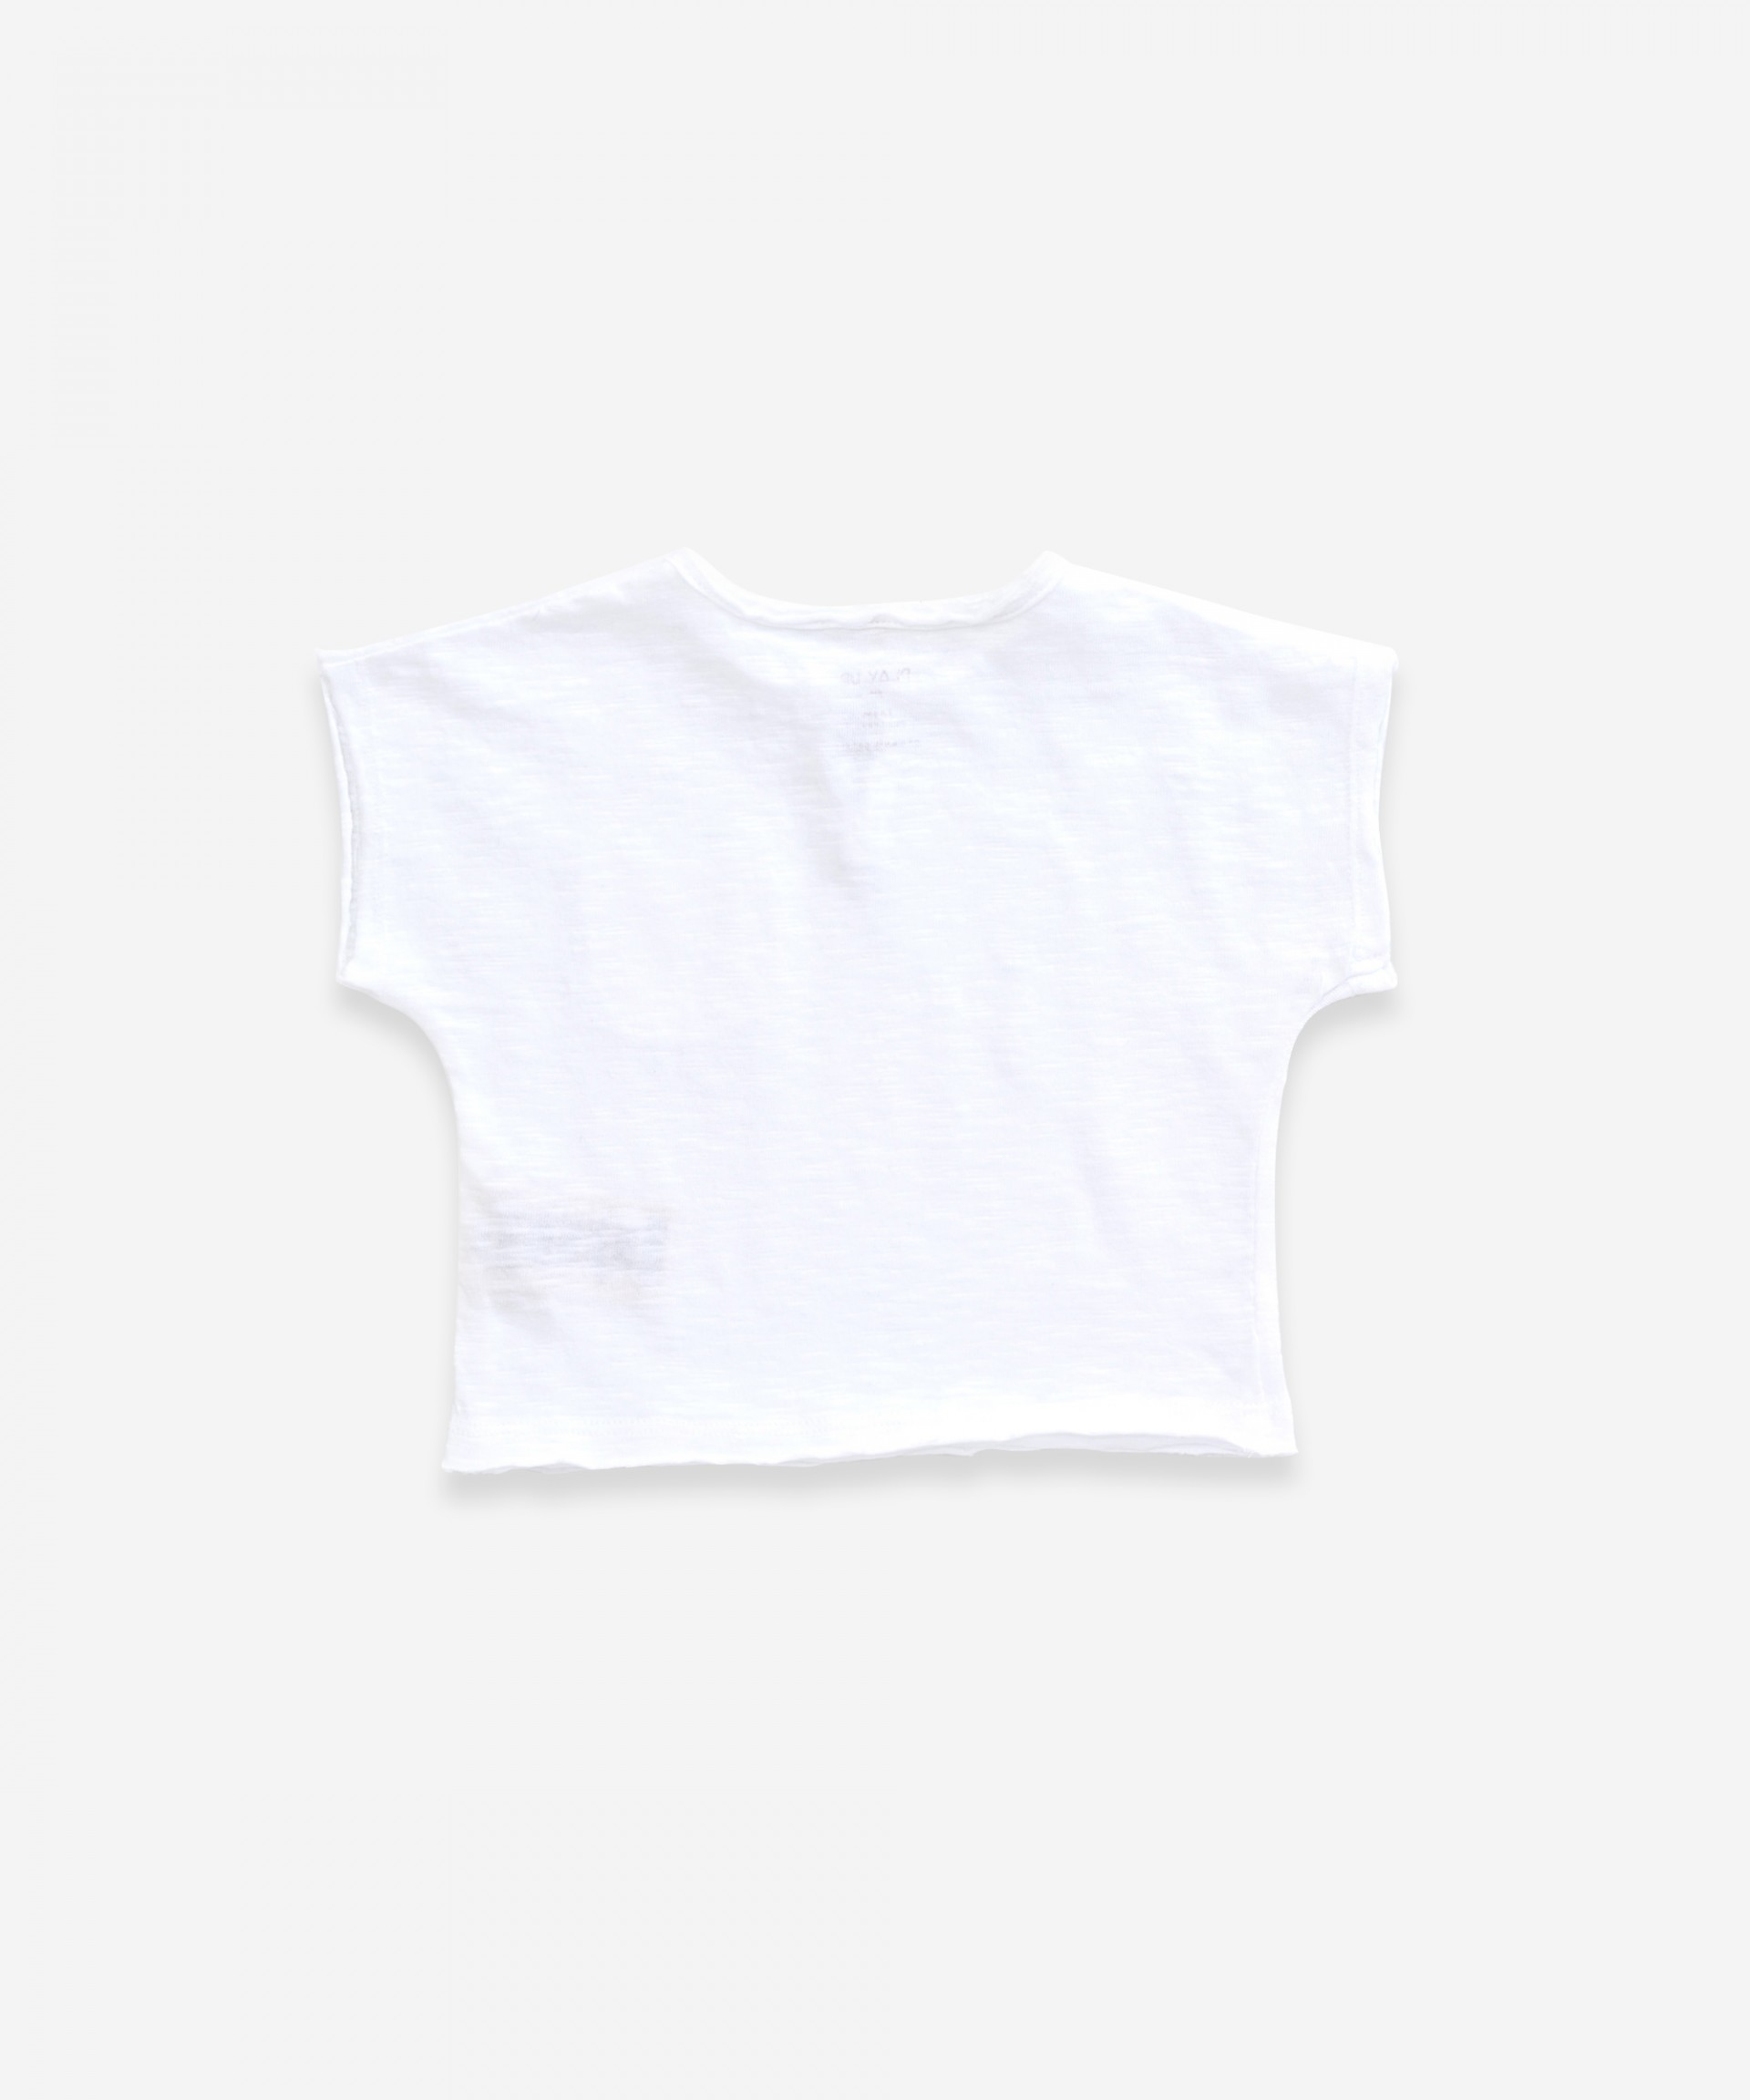 T-shirt in organic cotton with pocket  | Weaving